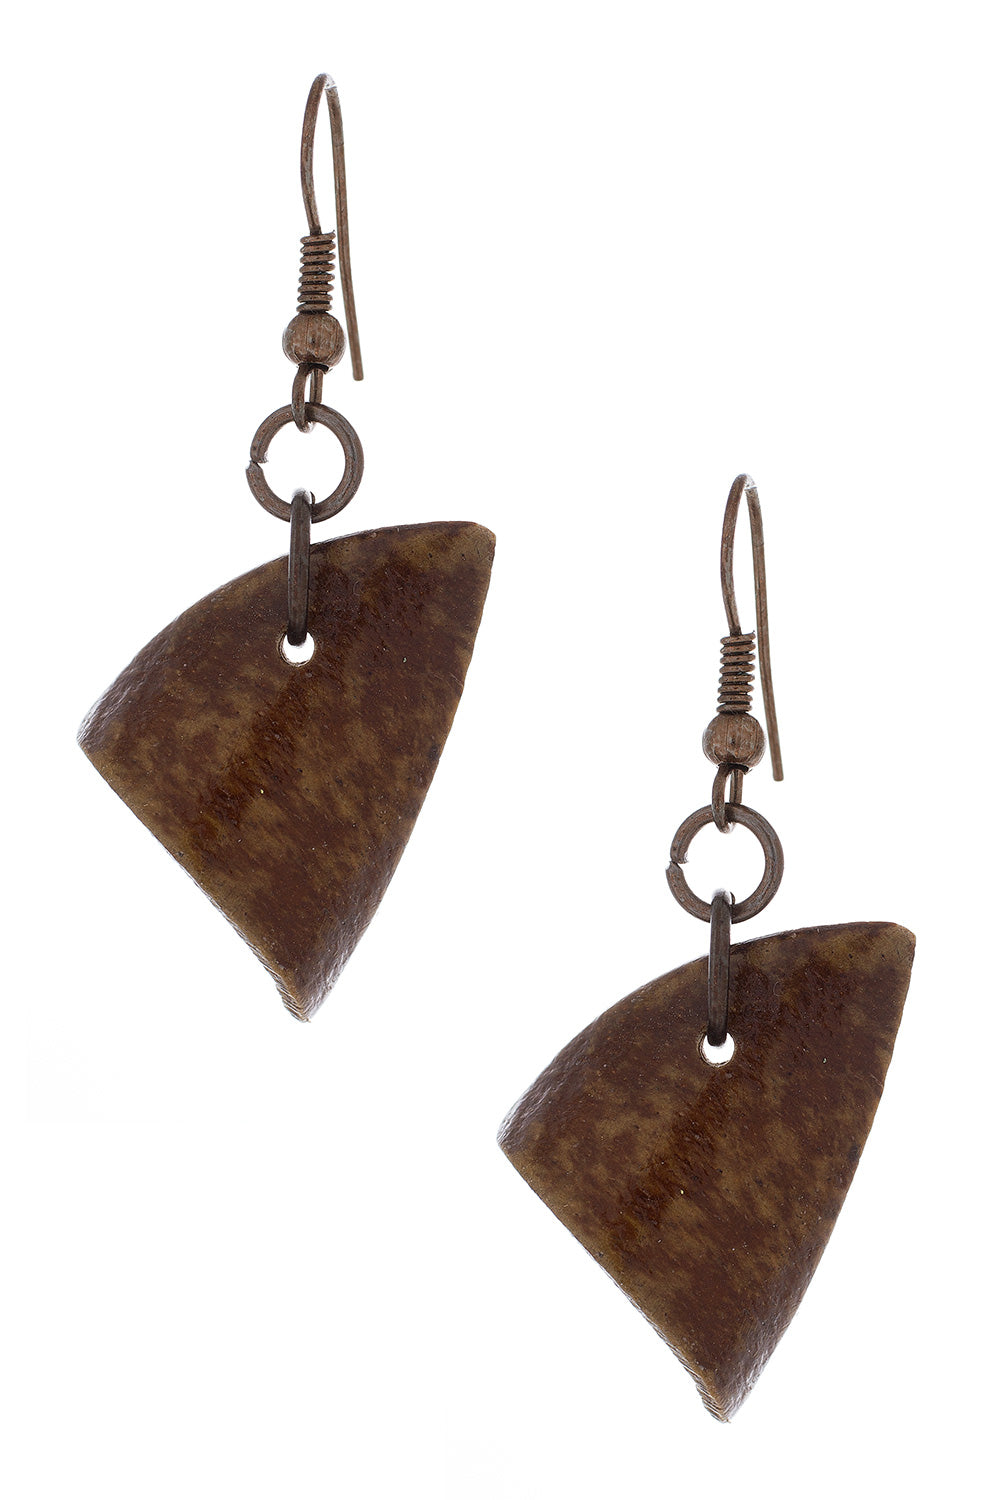 Type 3 Sea of Energy Earrings